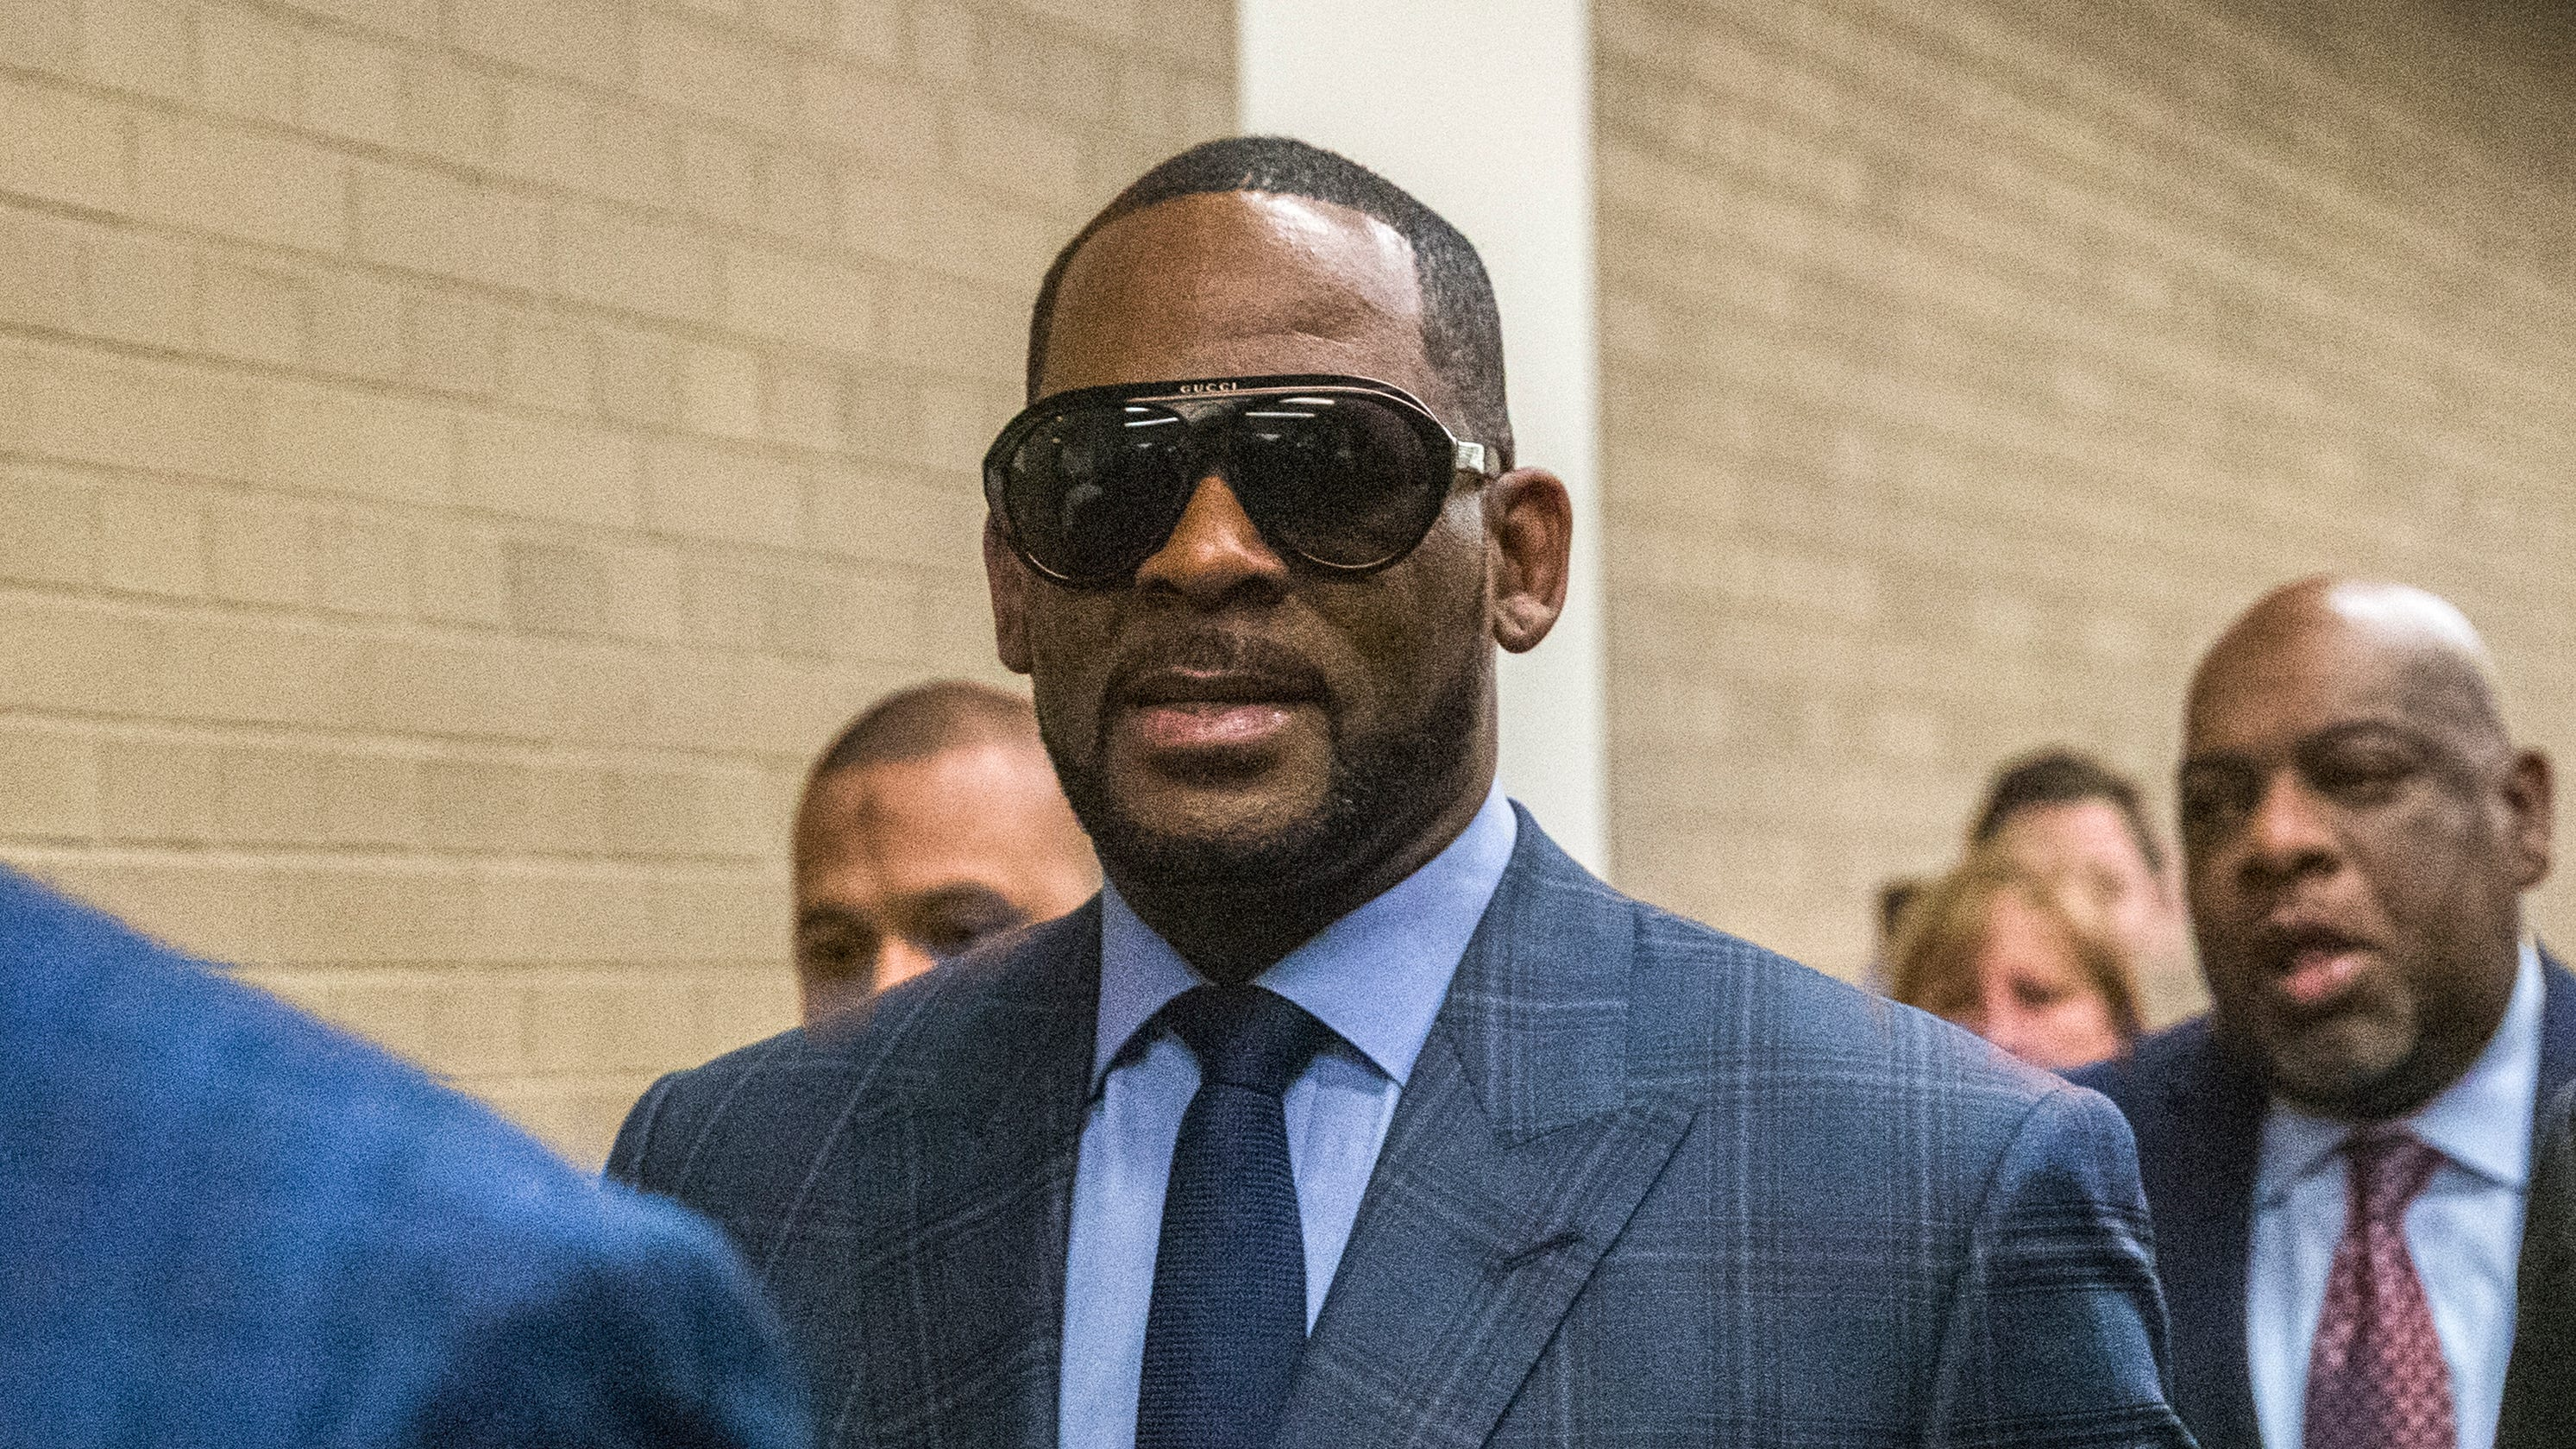 R  Kelly accuser Lanita Carter: He assaulted me, wrote a